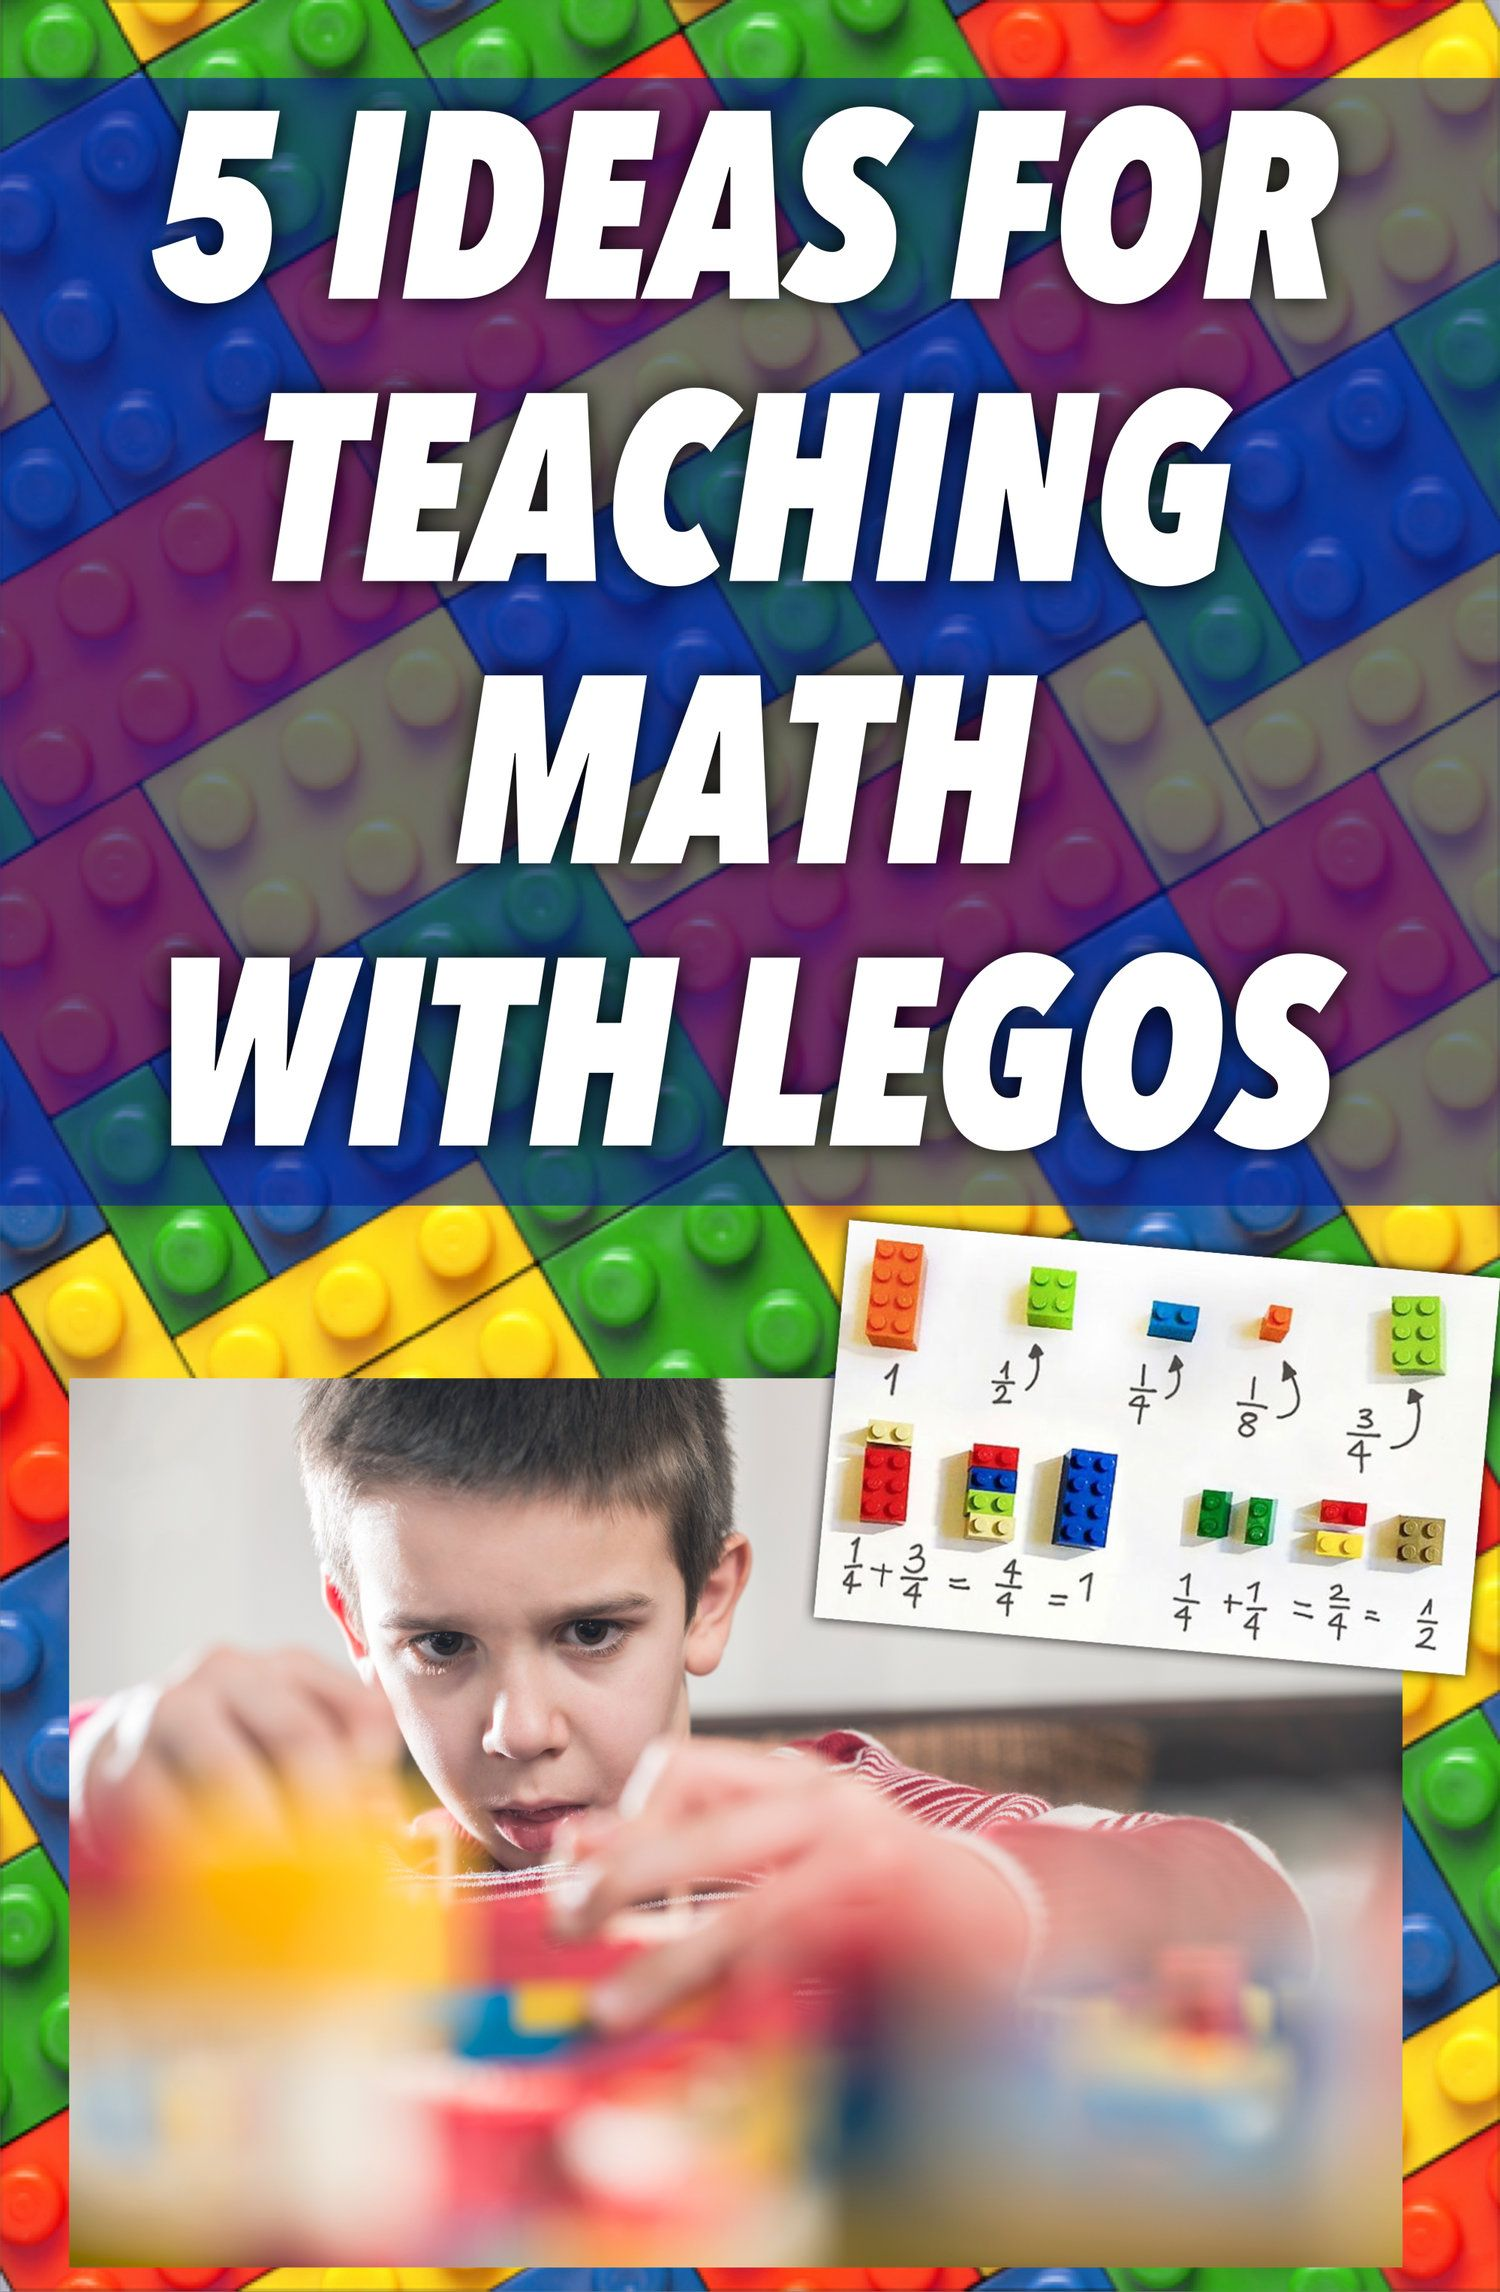 5 Ideas For Teaching Math With Legos